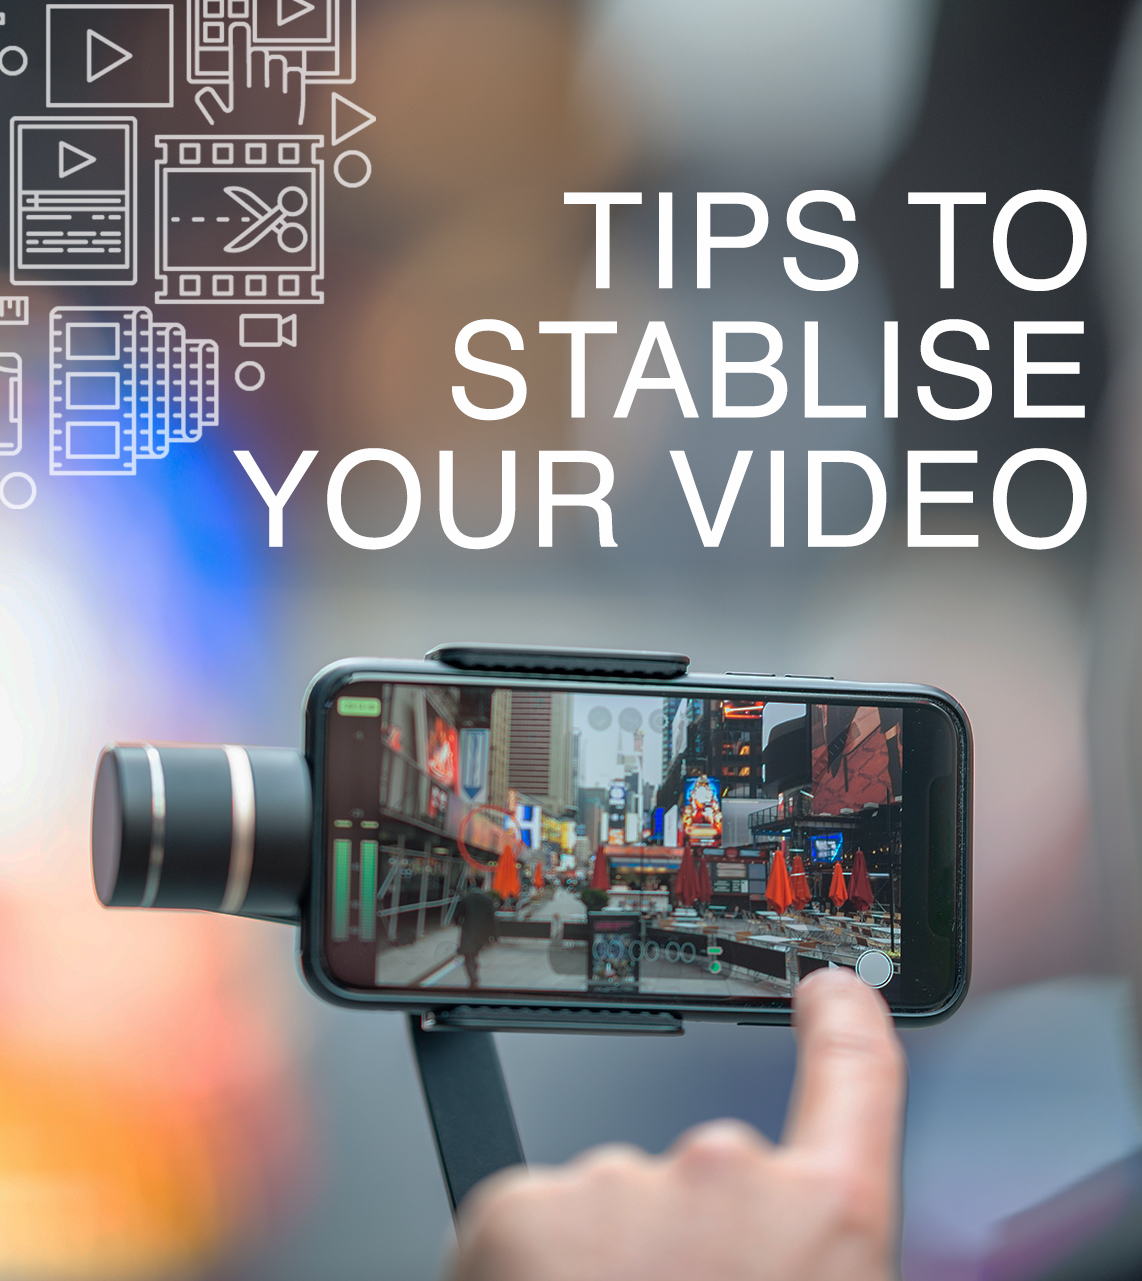 MPS Digital tips to stablise your video